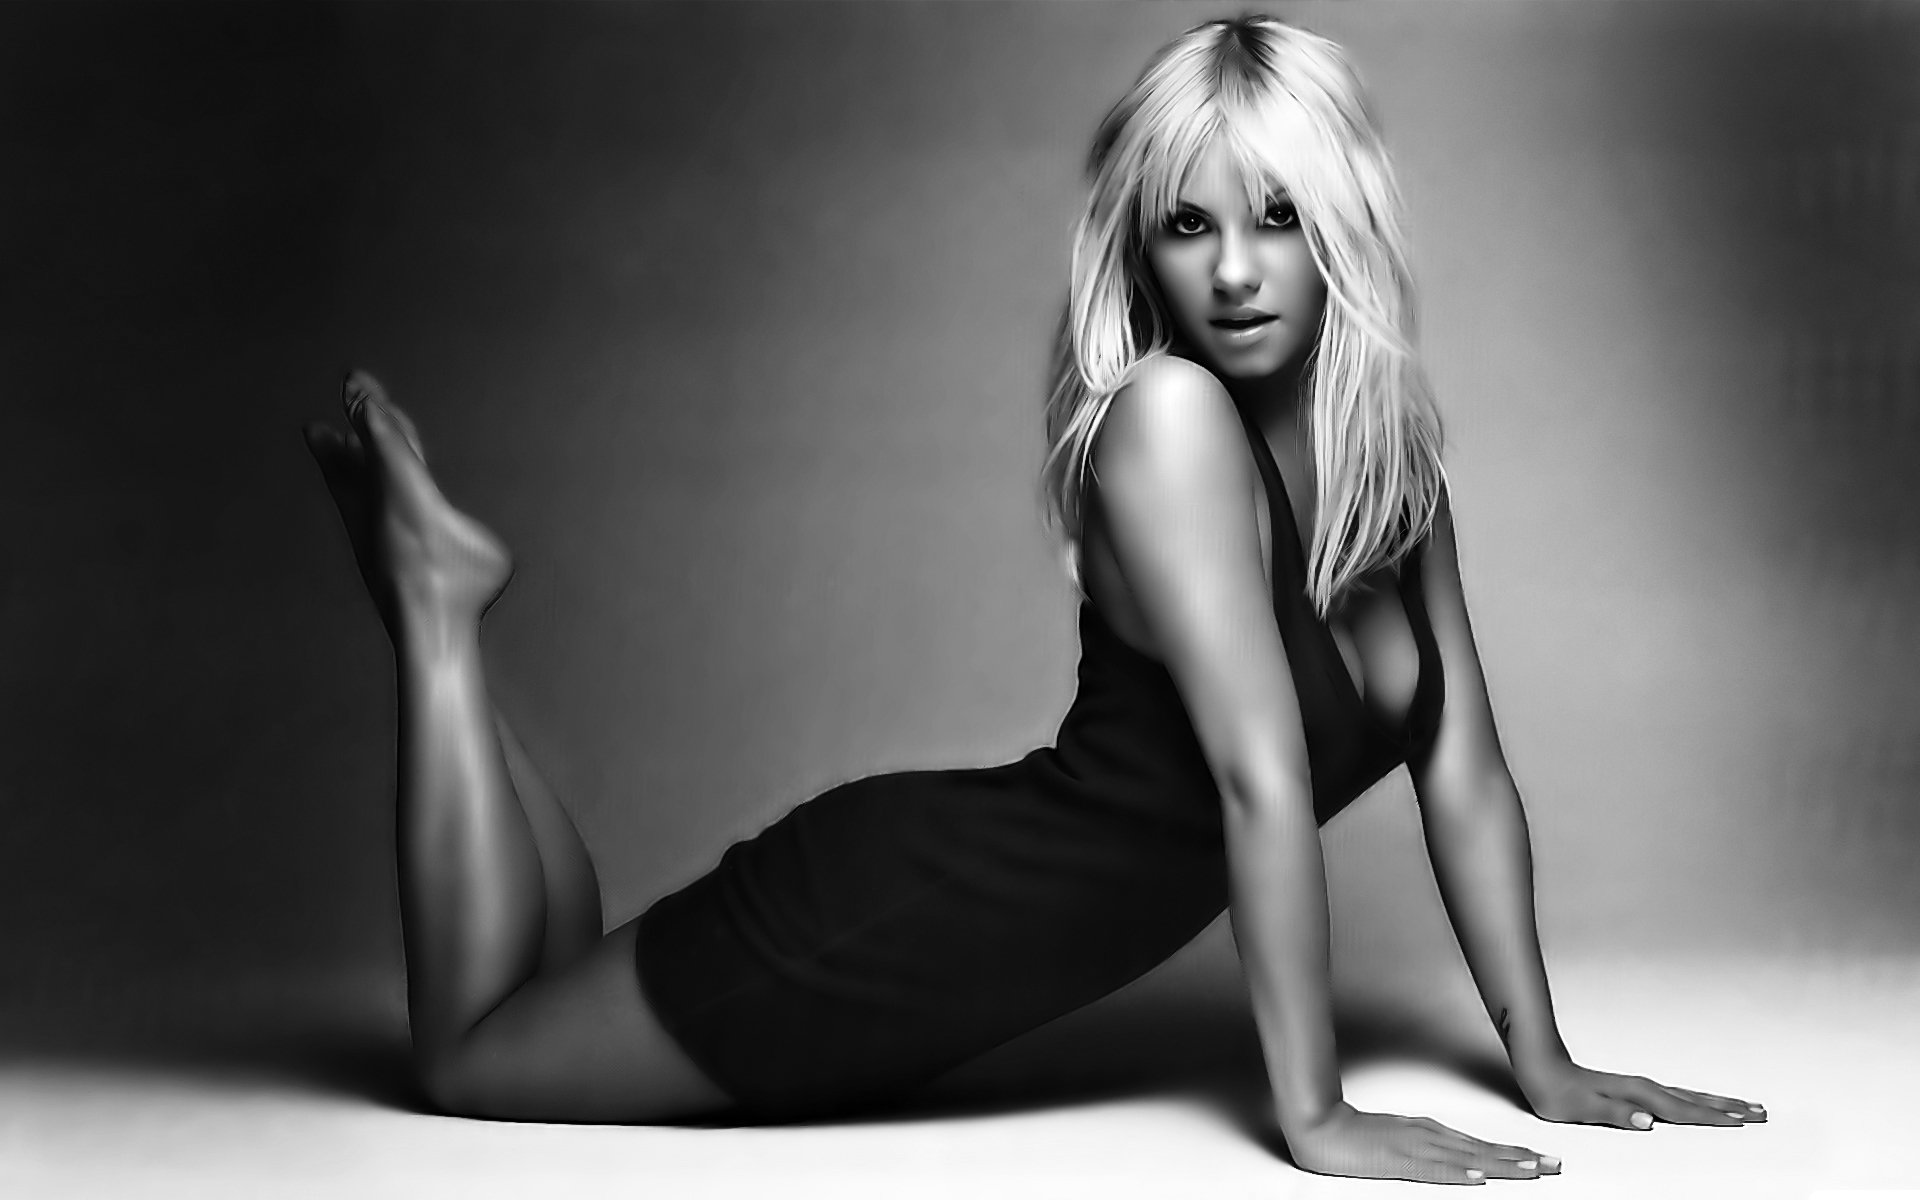 Britney Spears HD Wallpapers Backgrounds Wallpaper